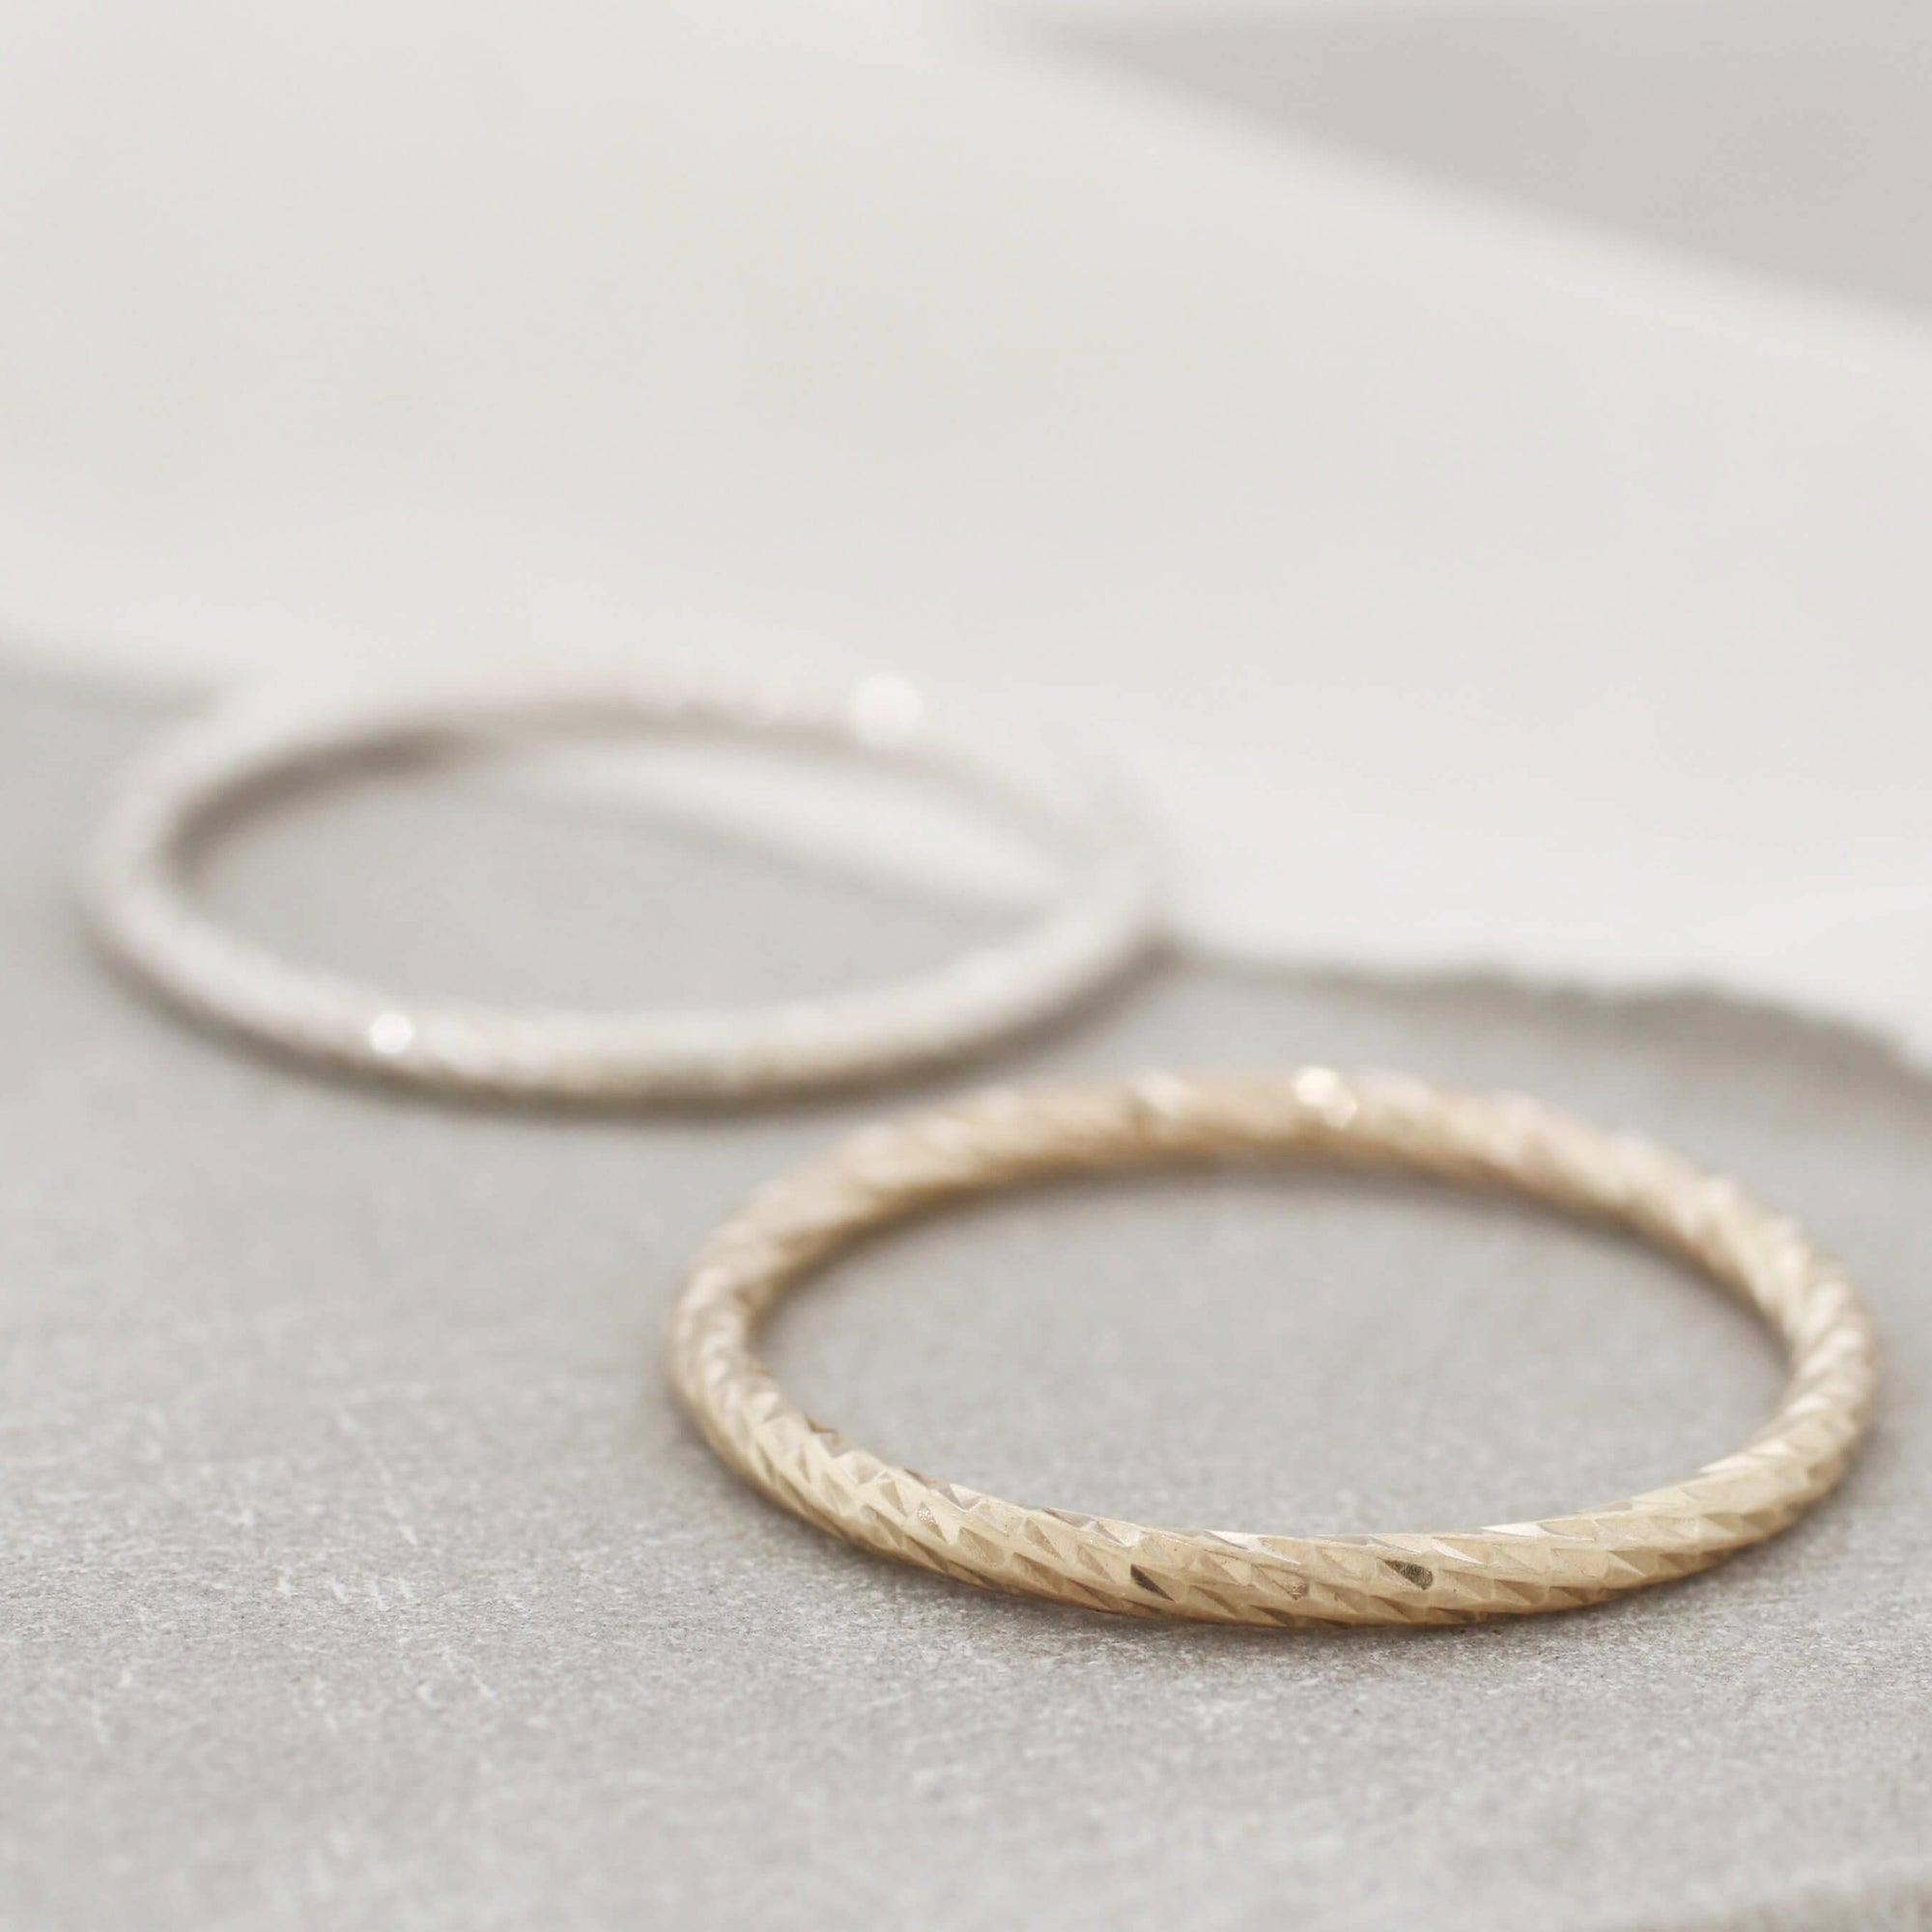 Faceted Band Rings. 9ct Gold Stackable Ring